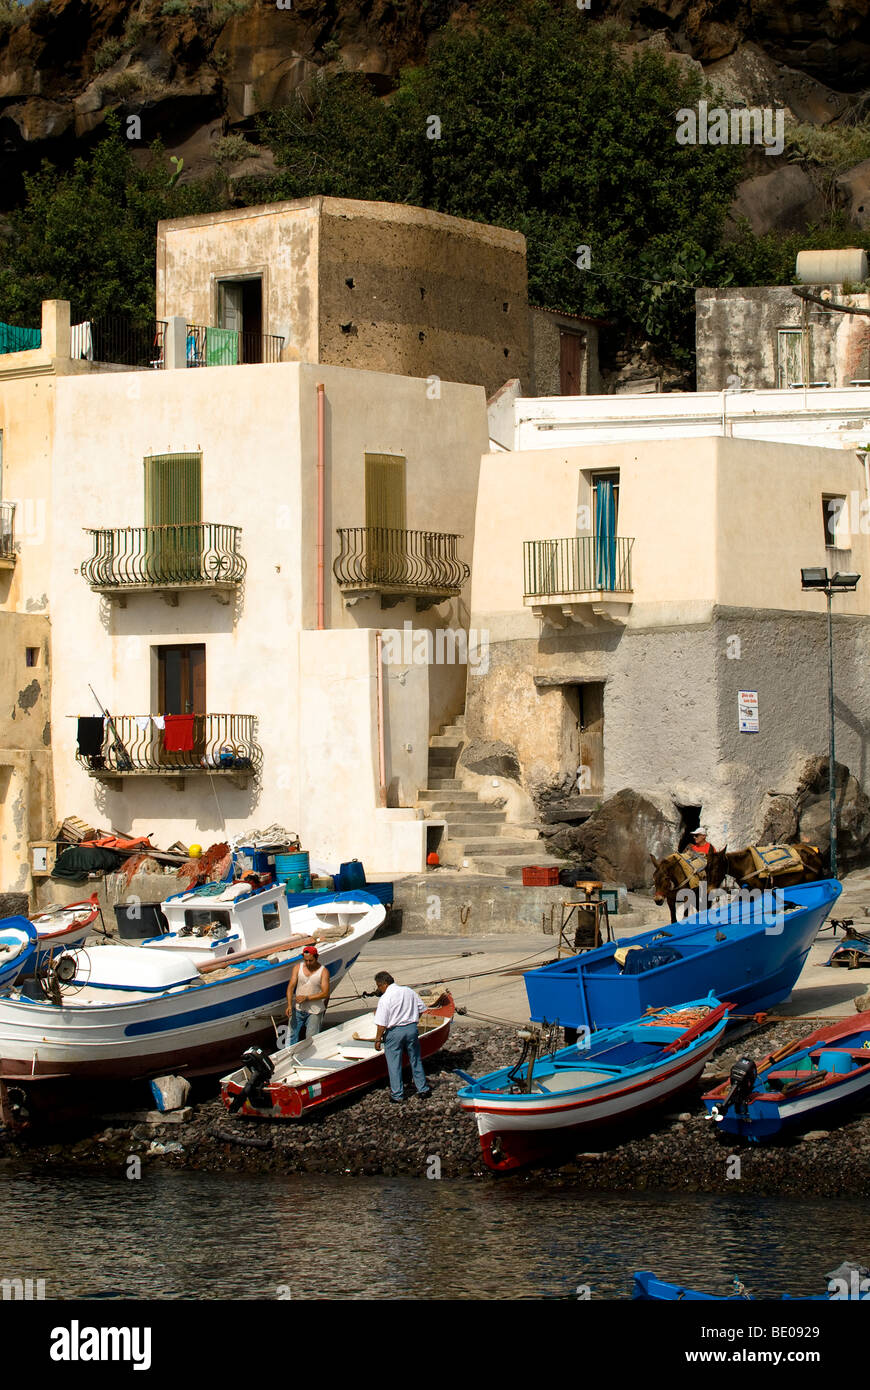 Fisherman and boats, Filicudi, Eolie Islands, Sicily, Italy Stock Photo